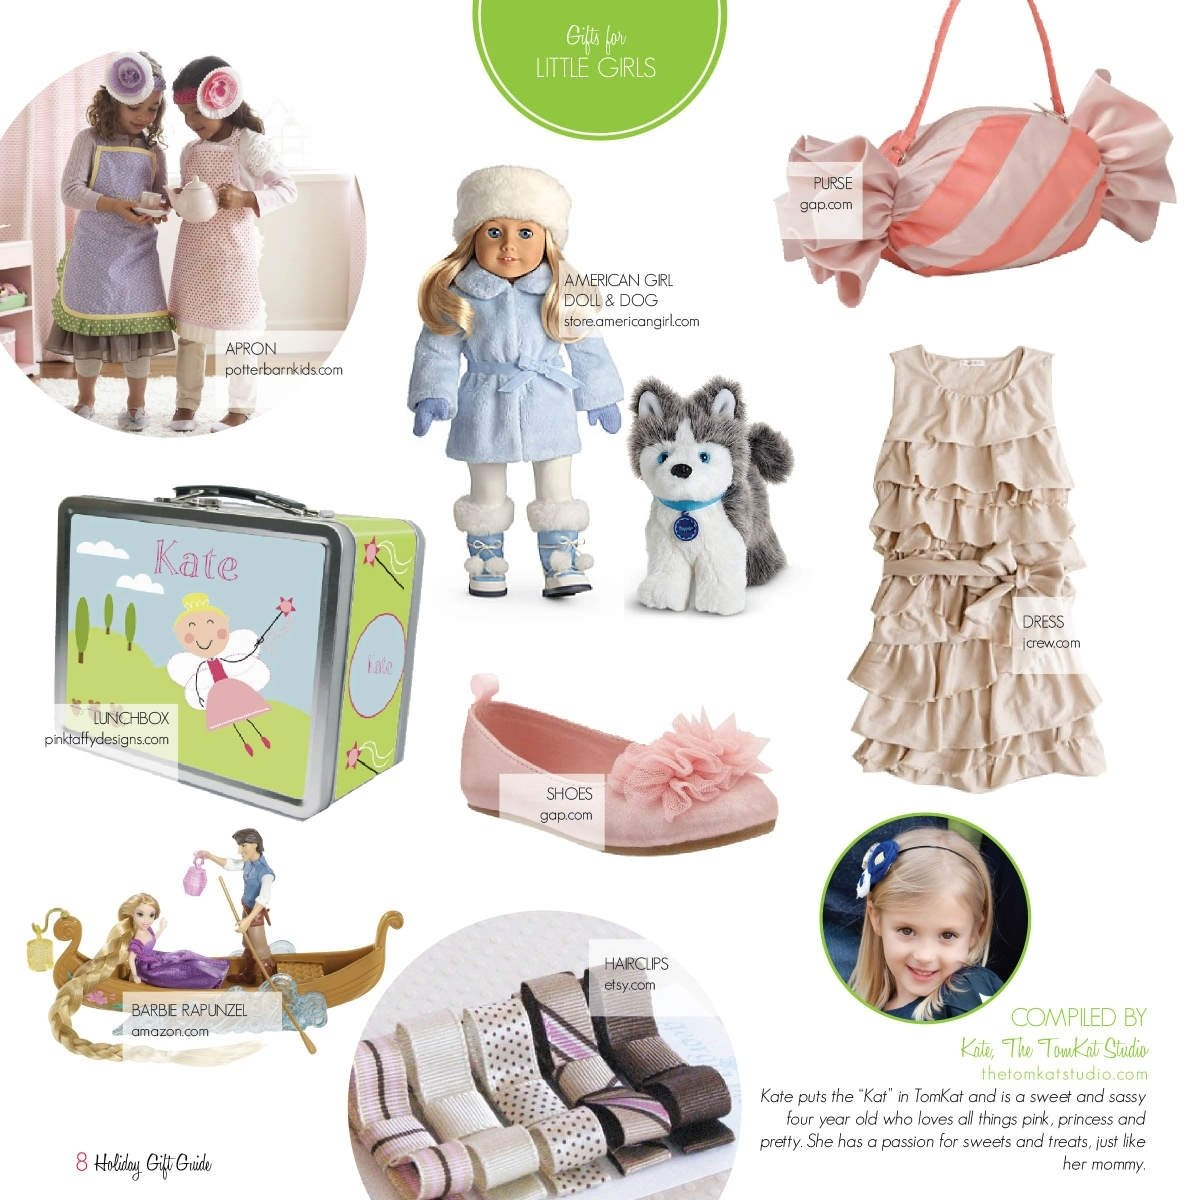 10 Stunning Gift Ideas For Little Girls gifts for little girls good boys cool dads holiday gift guide 1 2021